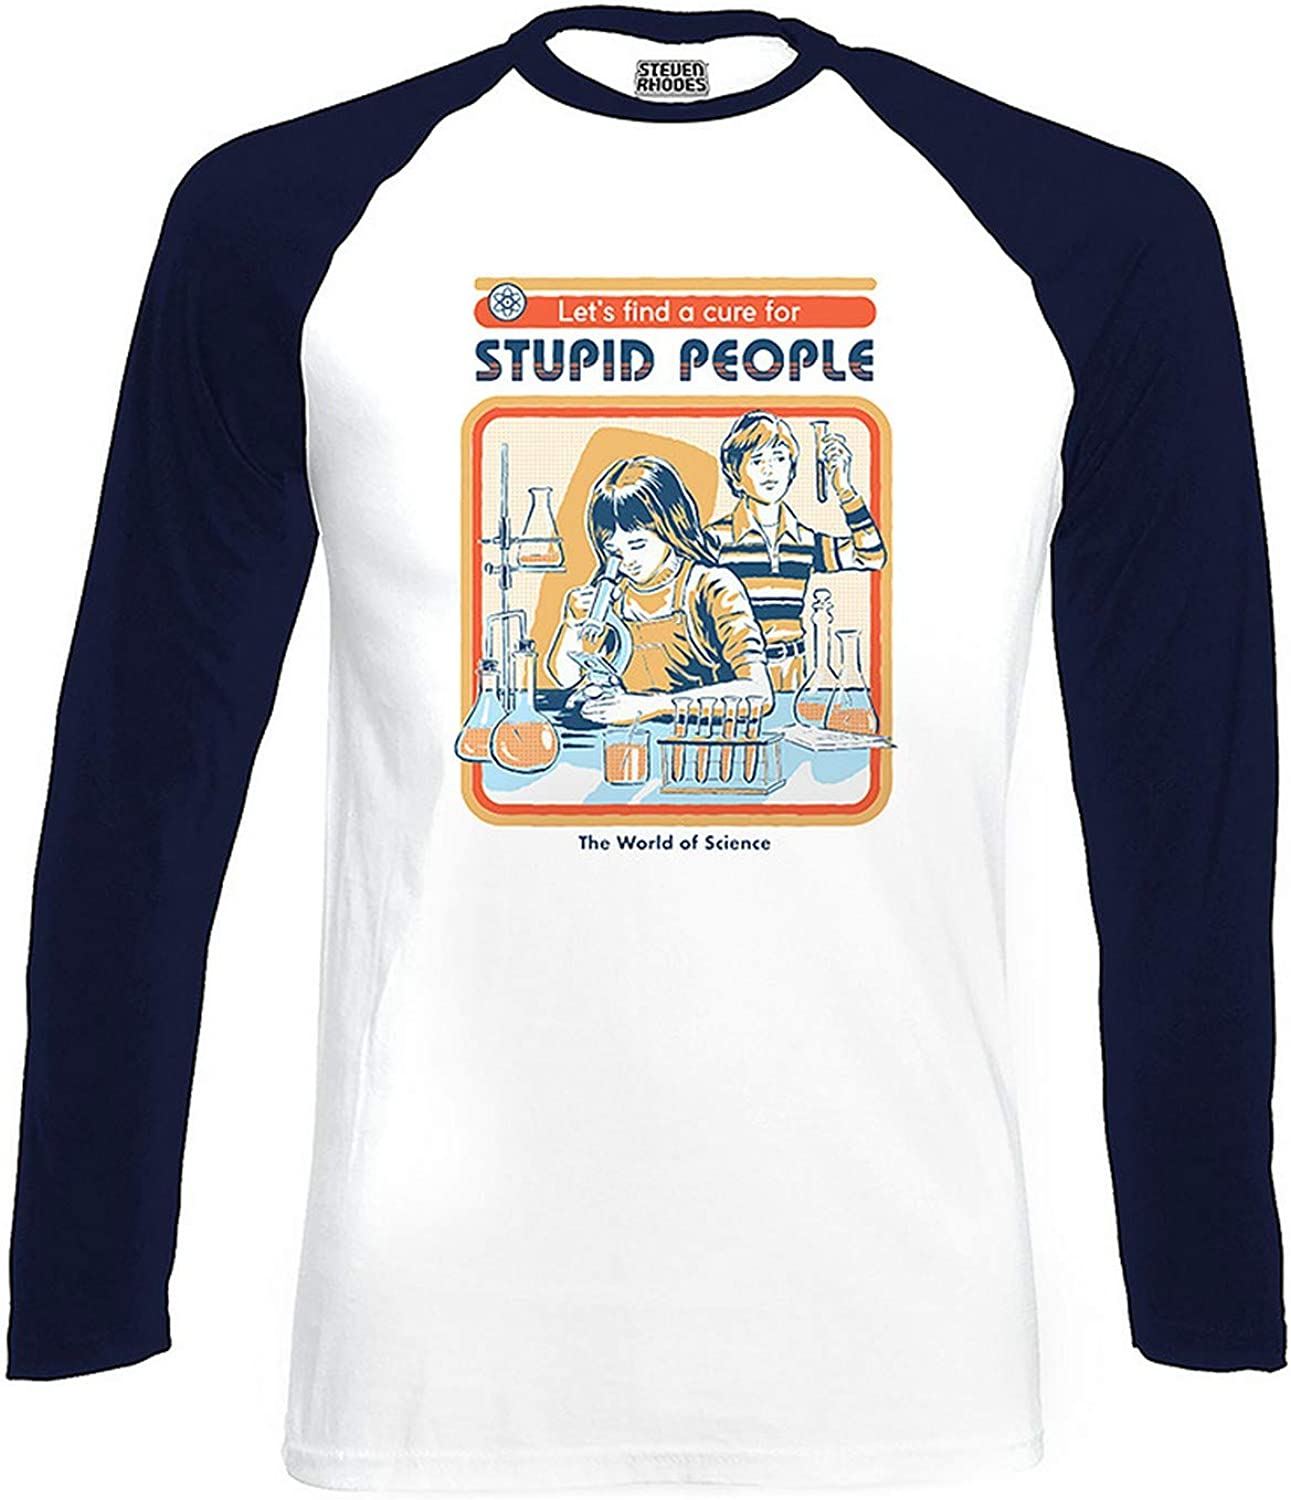 Steven Rhodes Official Lets Find A Cure for Stupid People Navy//White Baseball T-Shirt